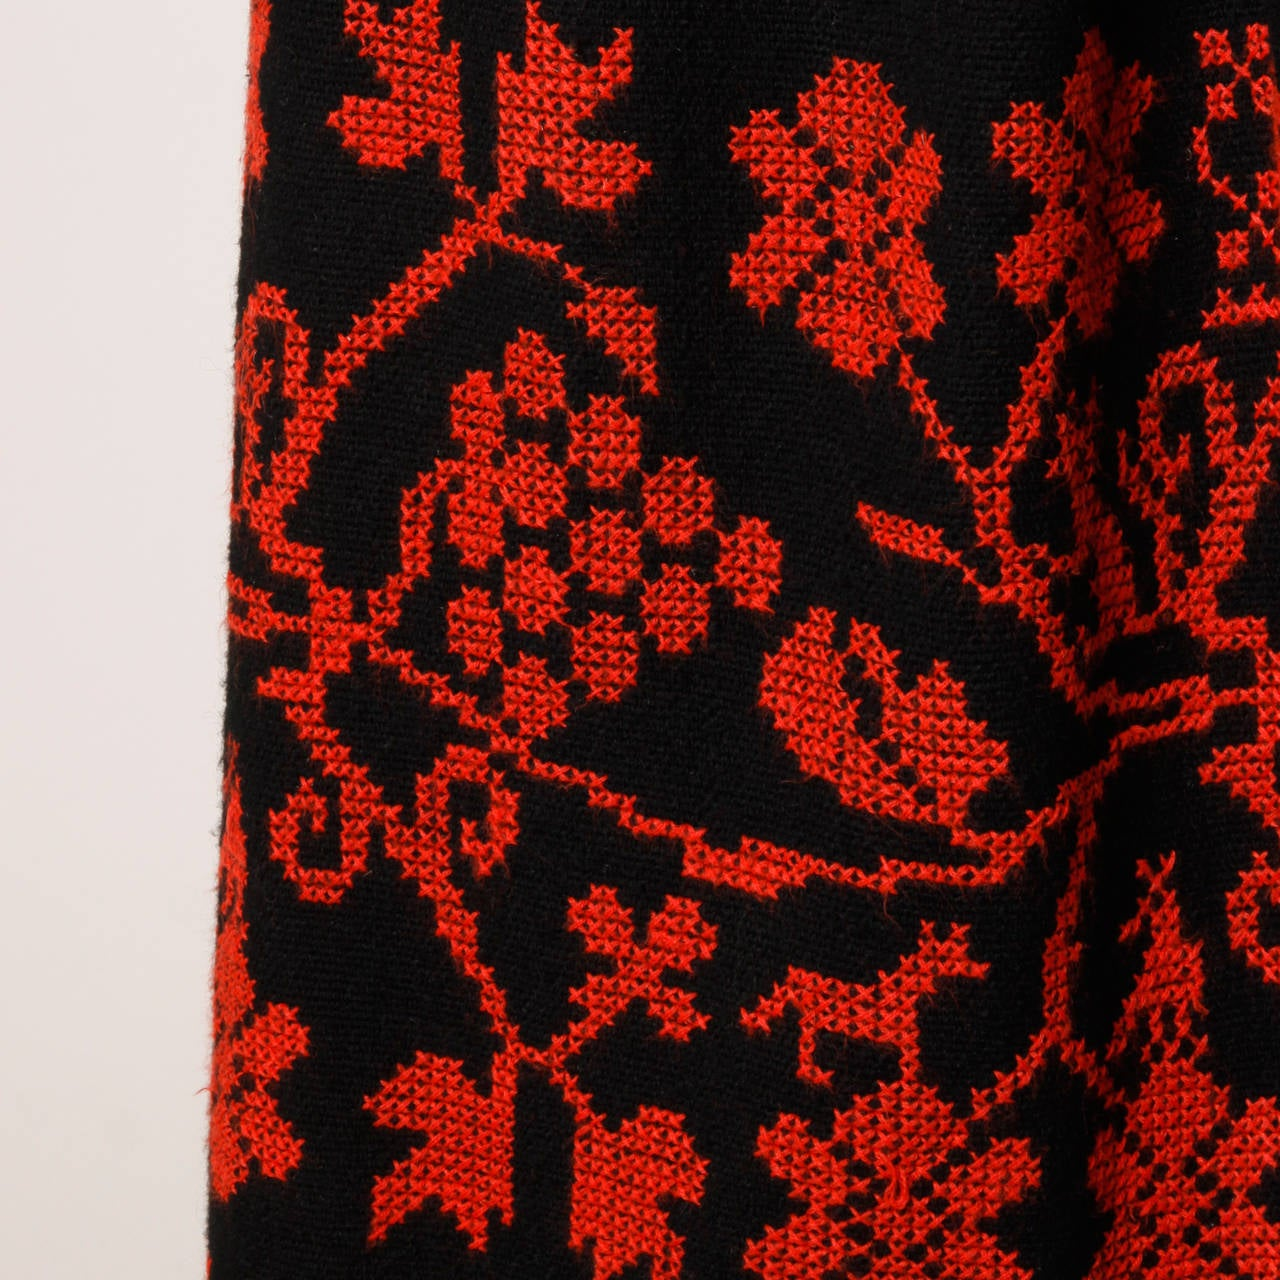 Vintage Hand Embroidered Cross Stitch Maxi Skirt 7